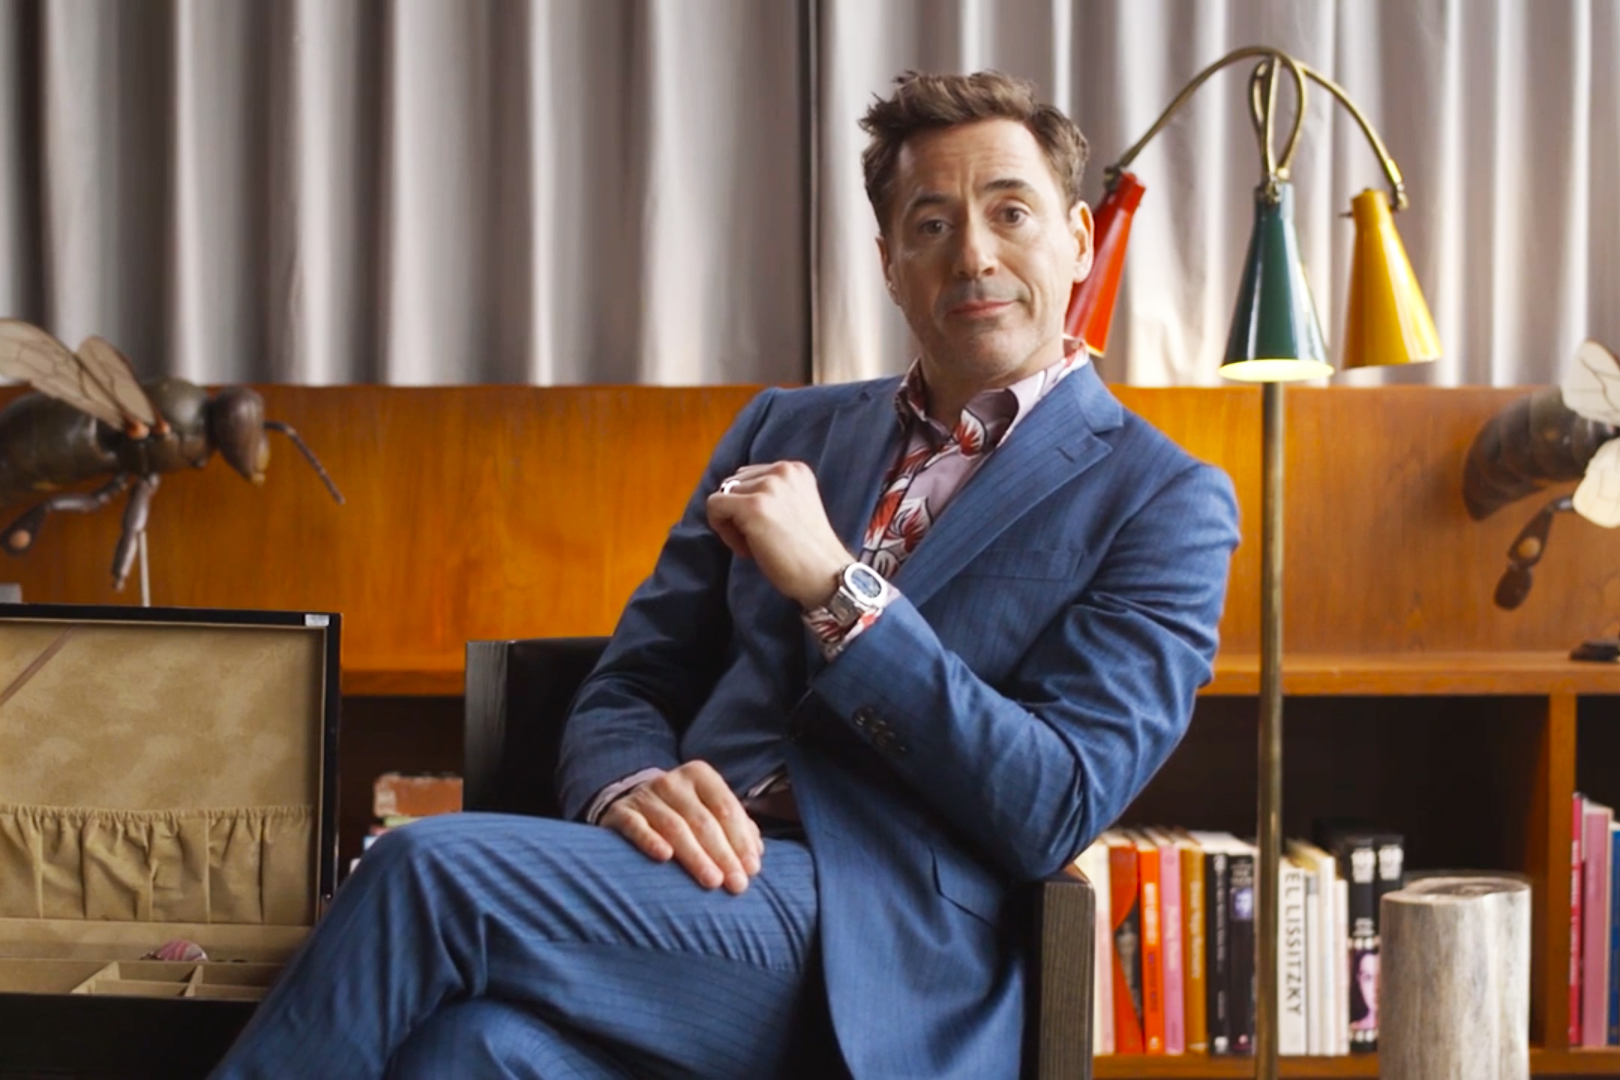 Robert Downey Jr. Shows off His Extensive Watch Collection